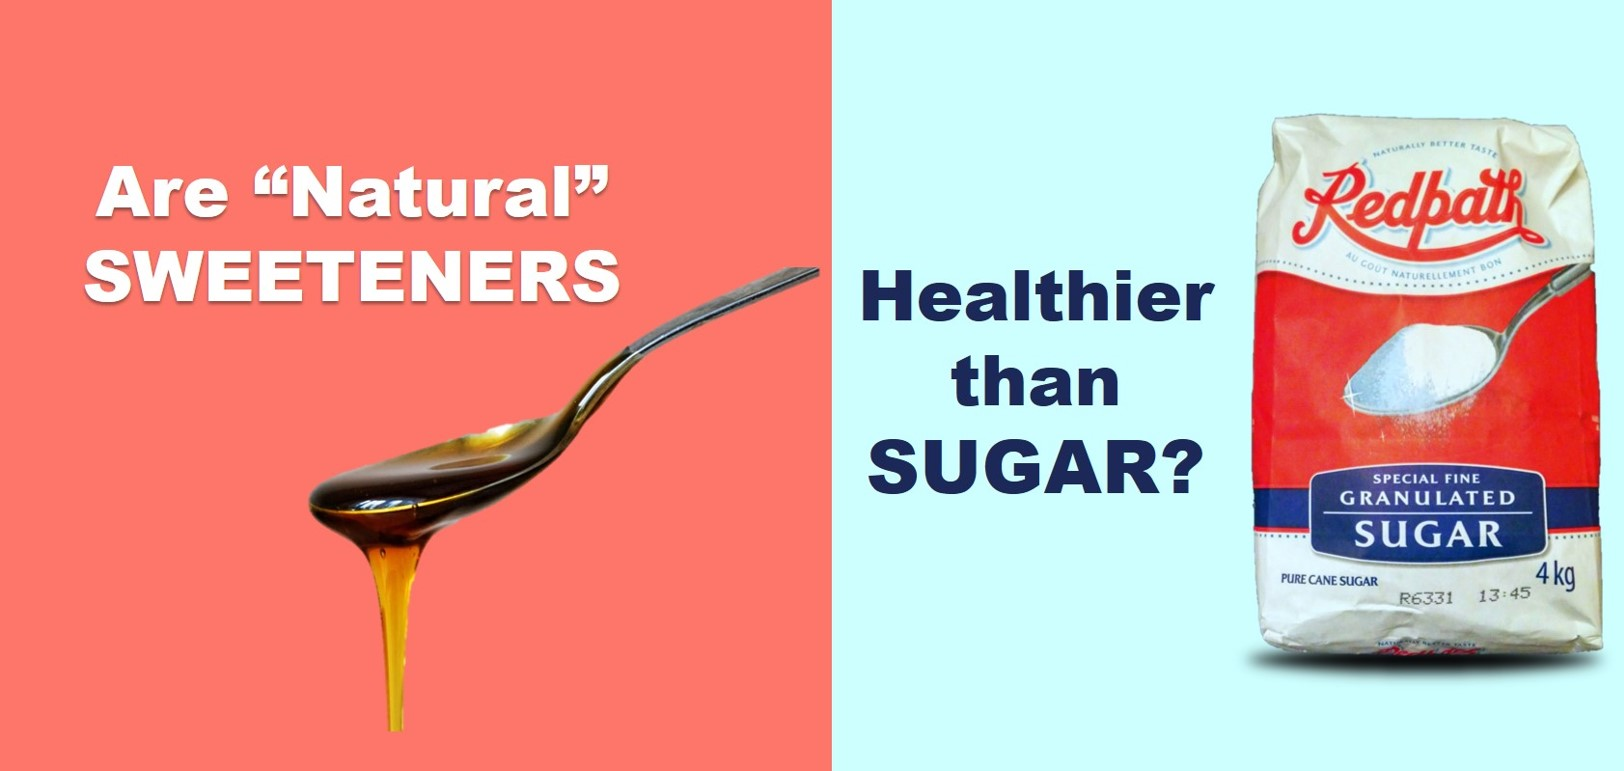 Are Quot Natural Quot Sweeteners Healthier Than Sugar Sheila Kealey